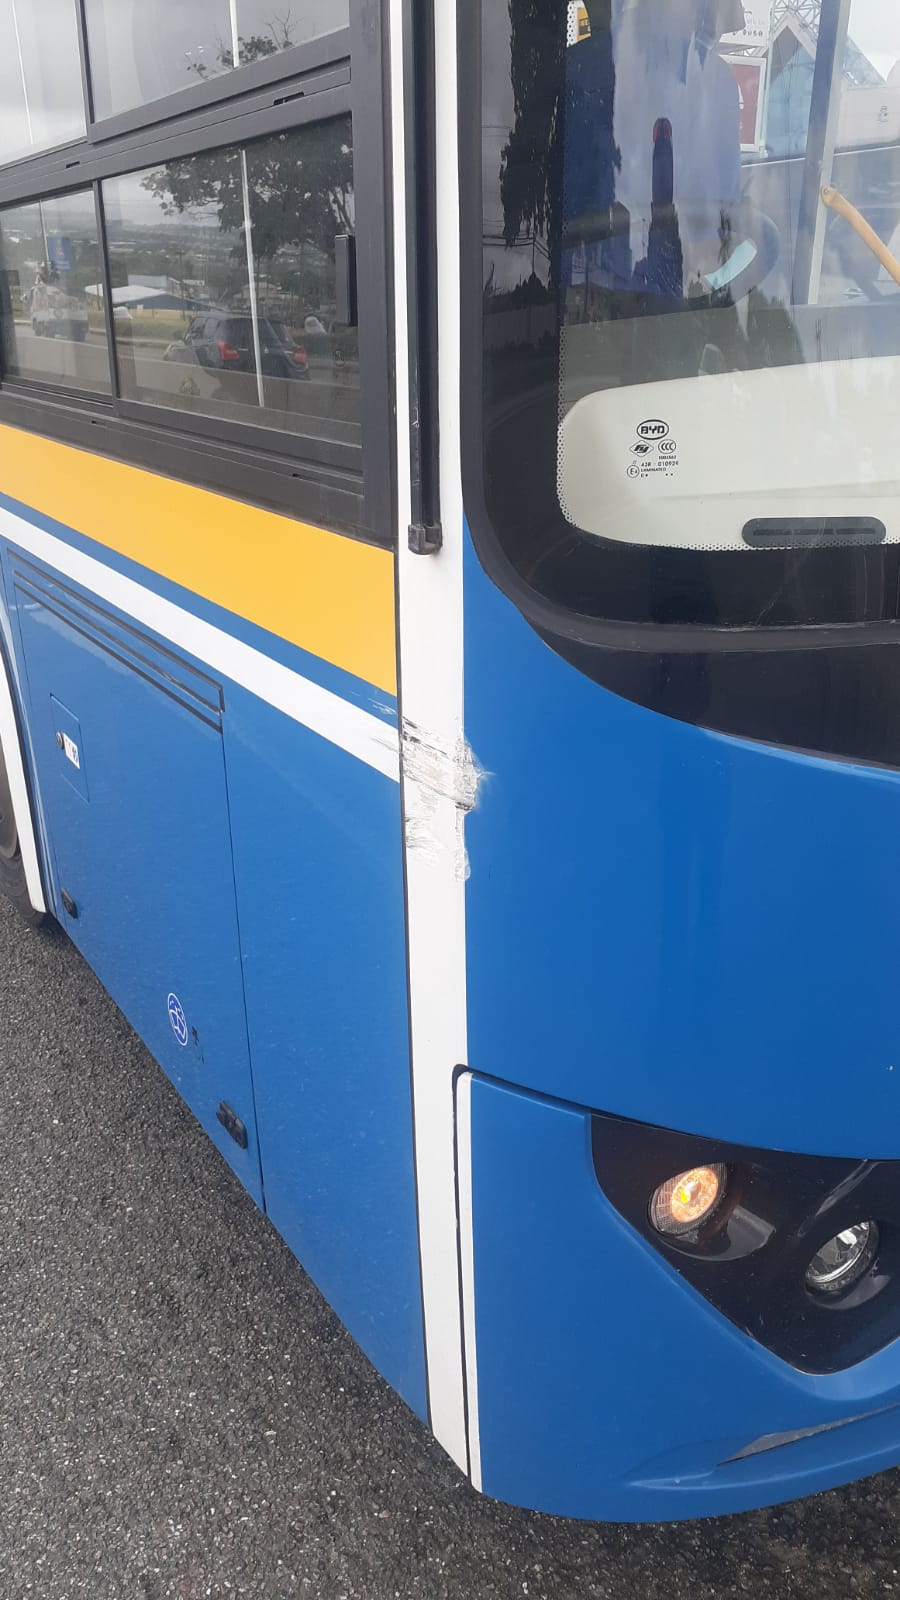 Hit bus after accident